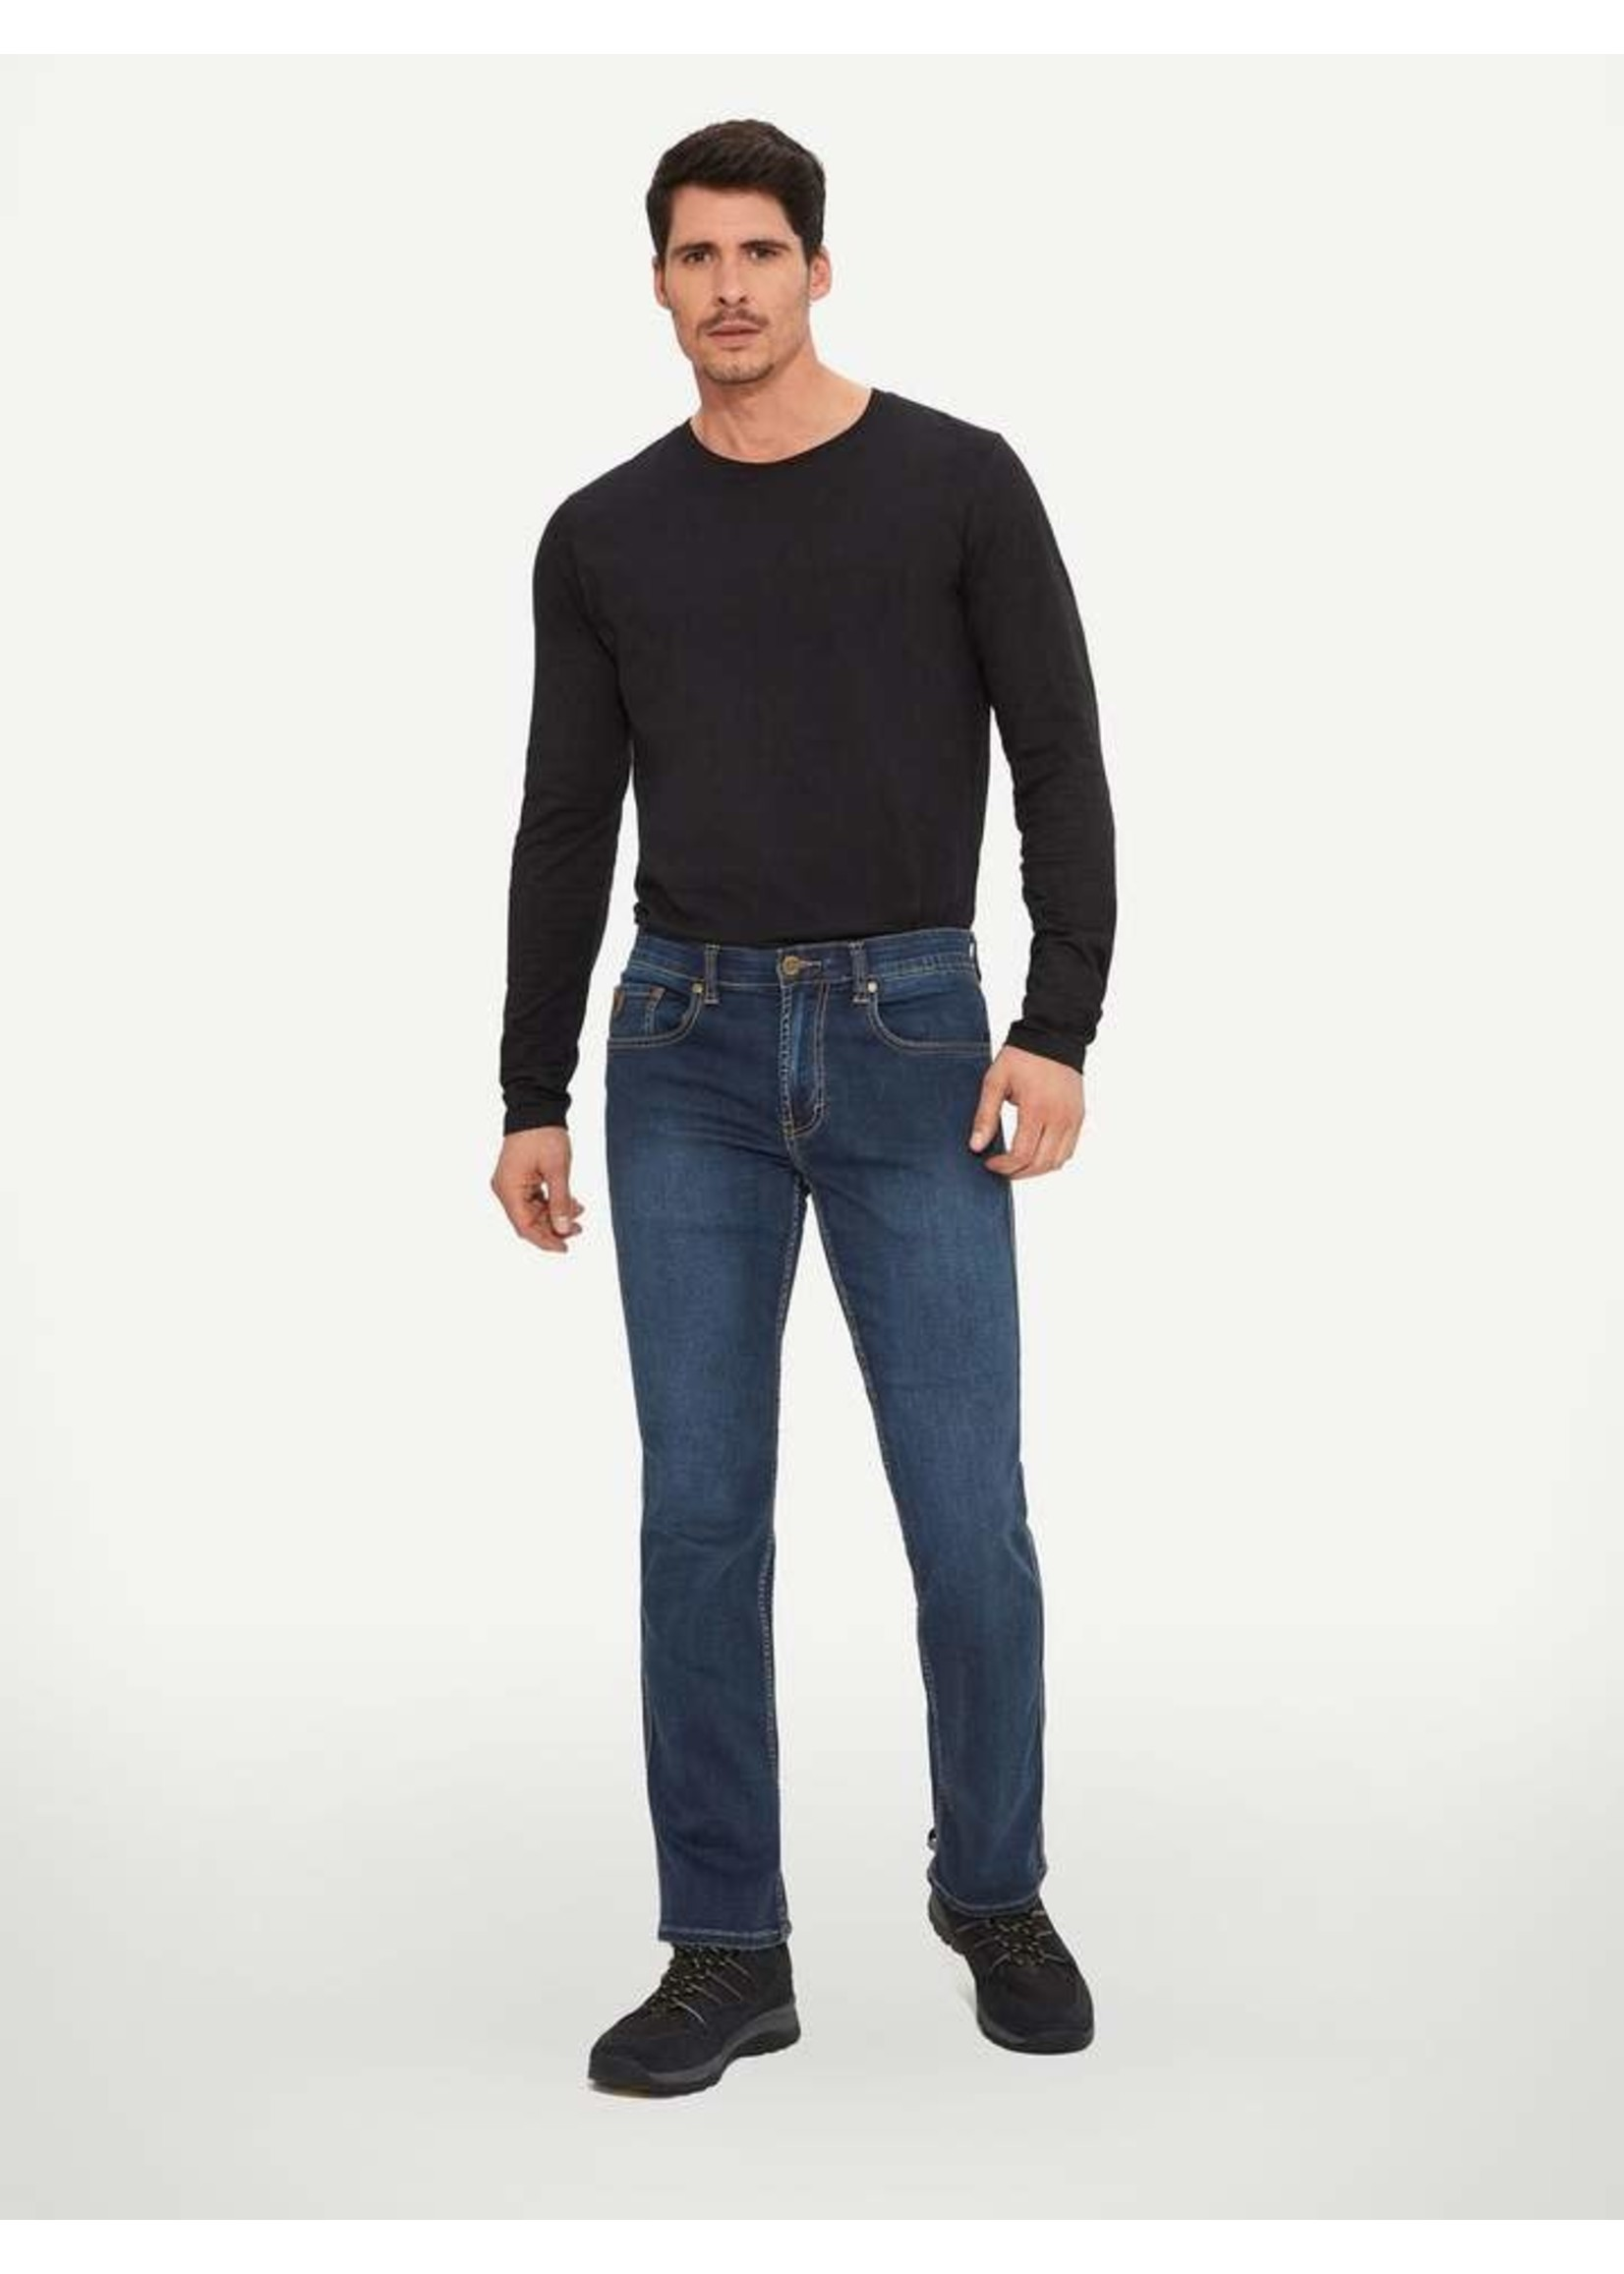 """Lois Jeans Canada The """"Brad-L"""" by Lois Jeans"""